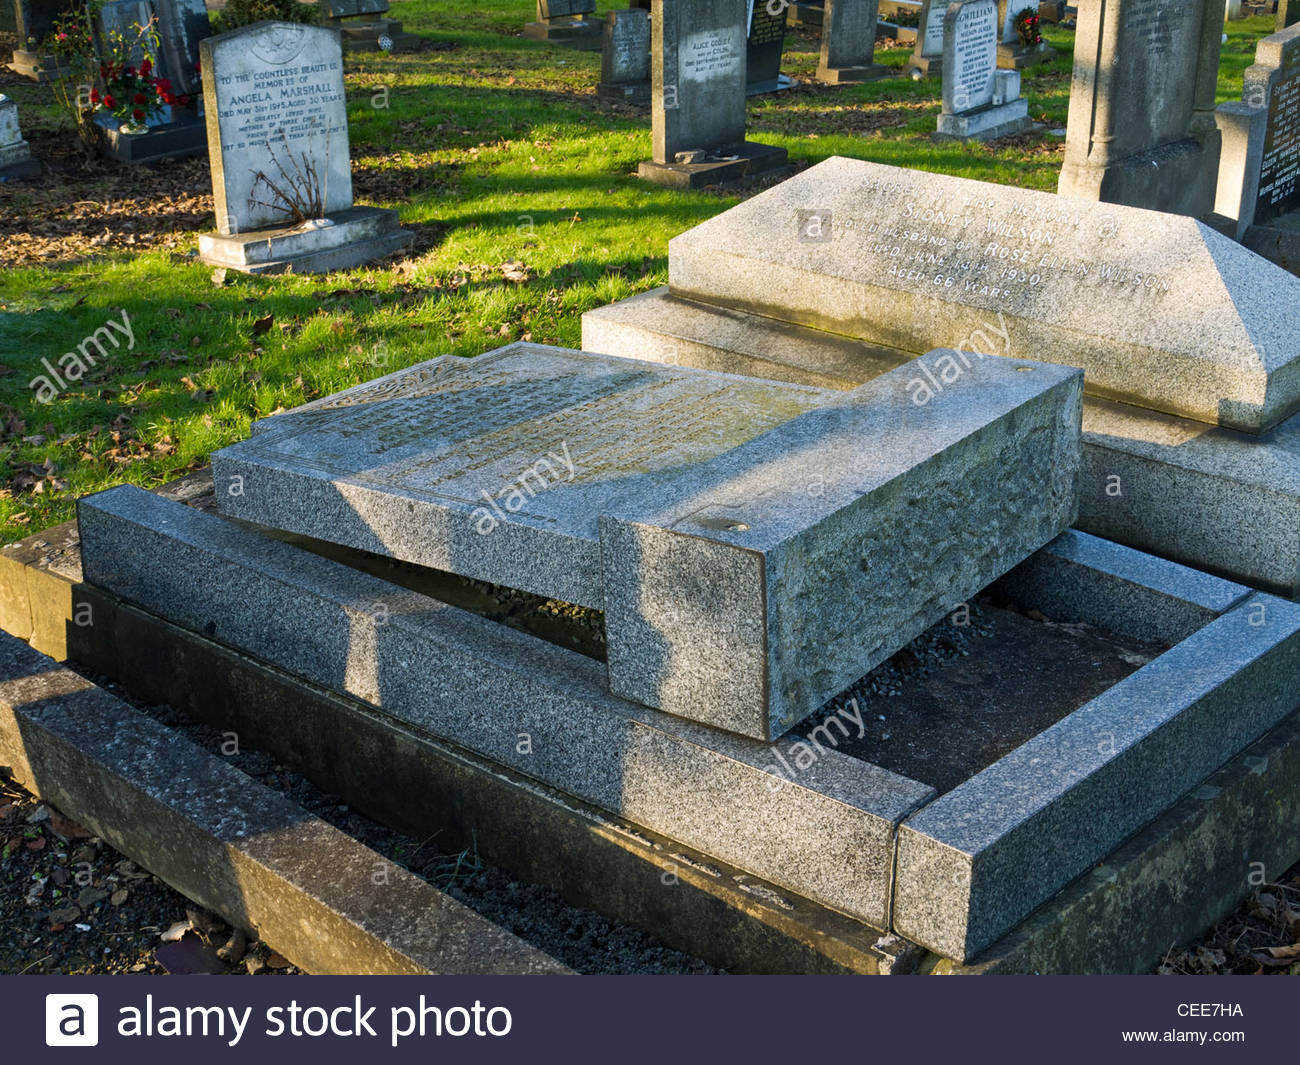 Head Stones Laid down for Health and Safety Crooks Cemetery Sheffield UK - Stock Image